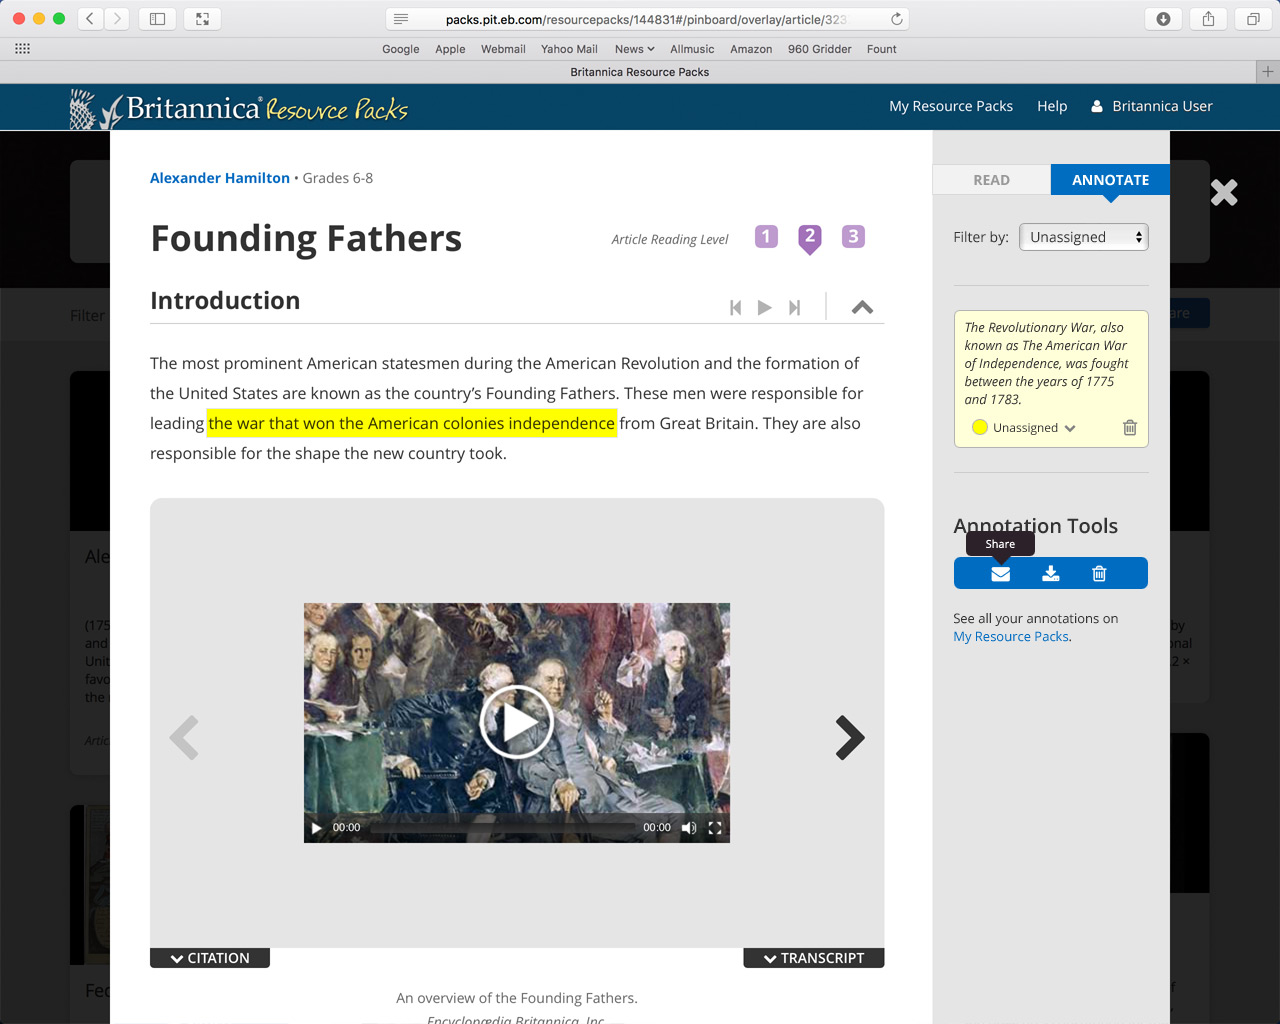 The initial idea for articles annotations was to find some space on the already-crowded article modal.